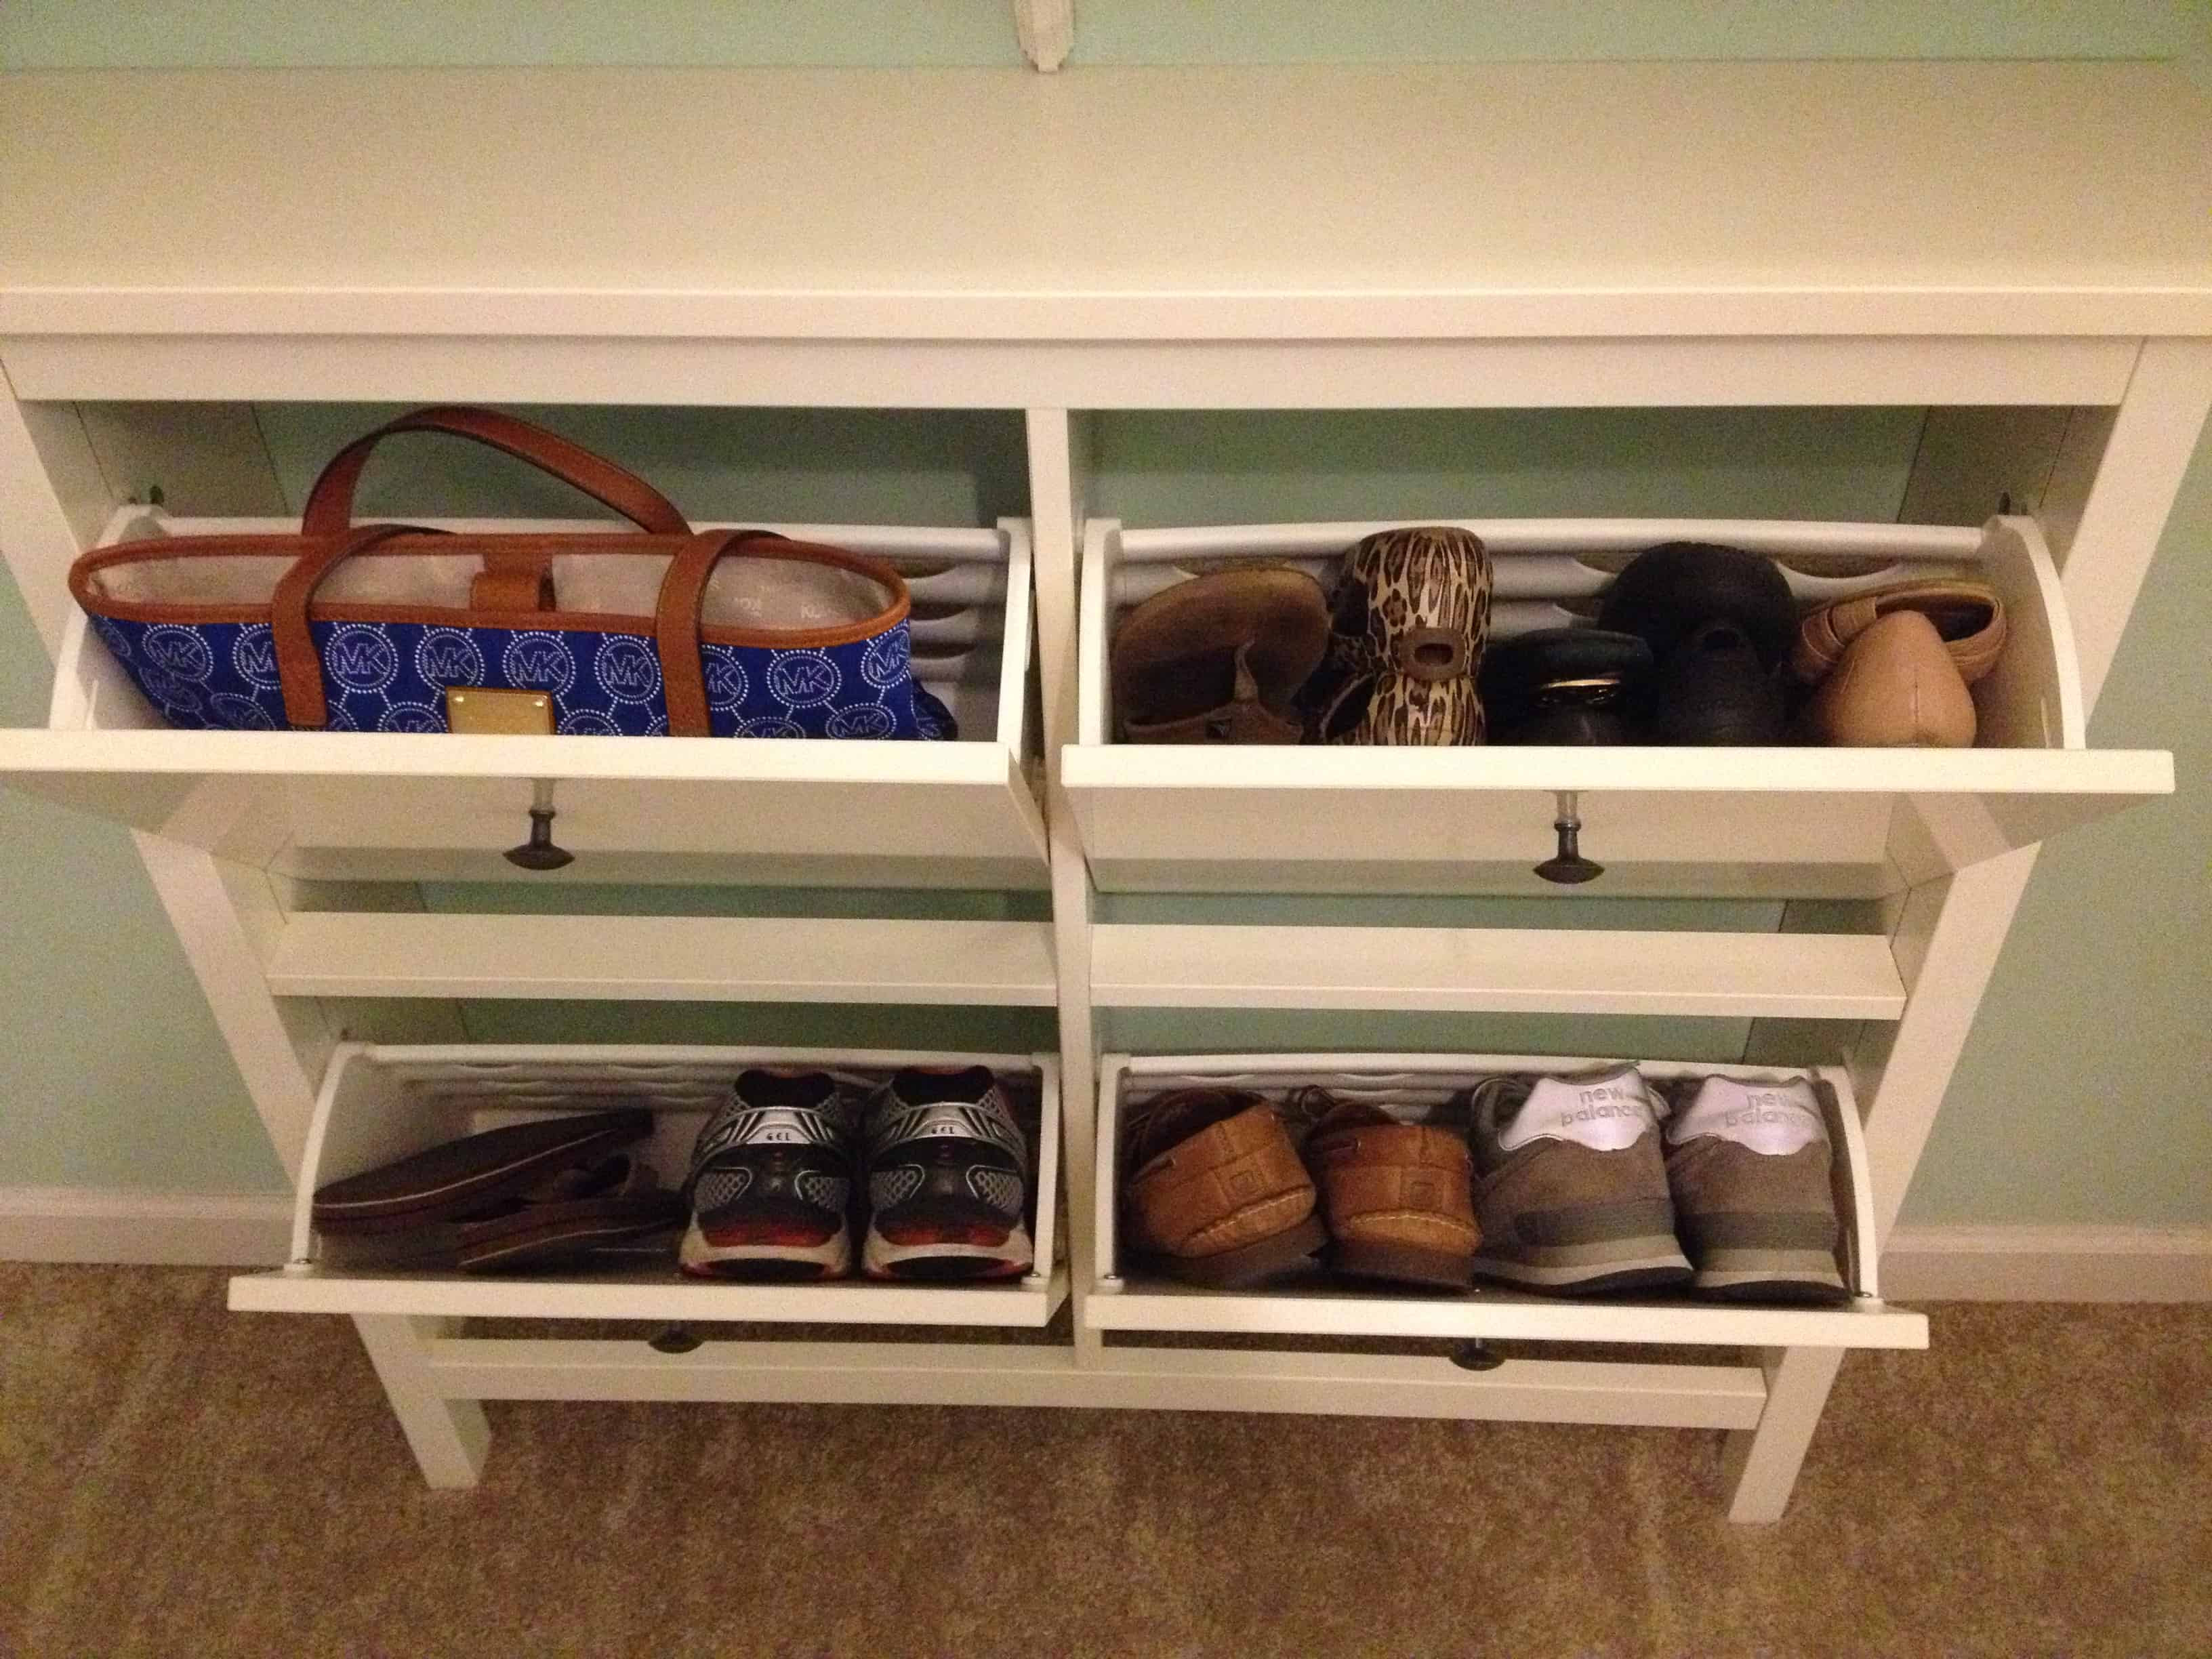 Best ideas about Entryway Shoe Rack . Save or Pin Shoe Pile Don t Bother Me Charleston Crafted Now.